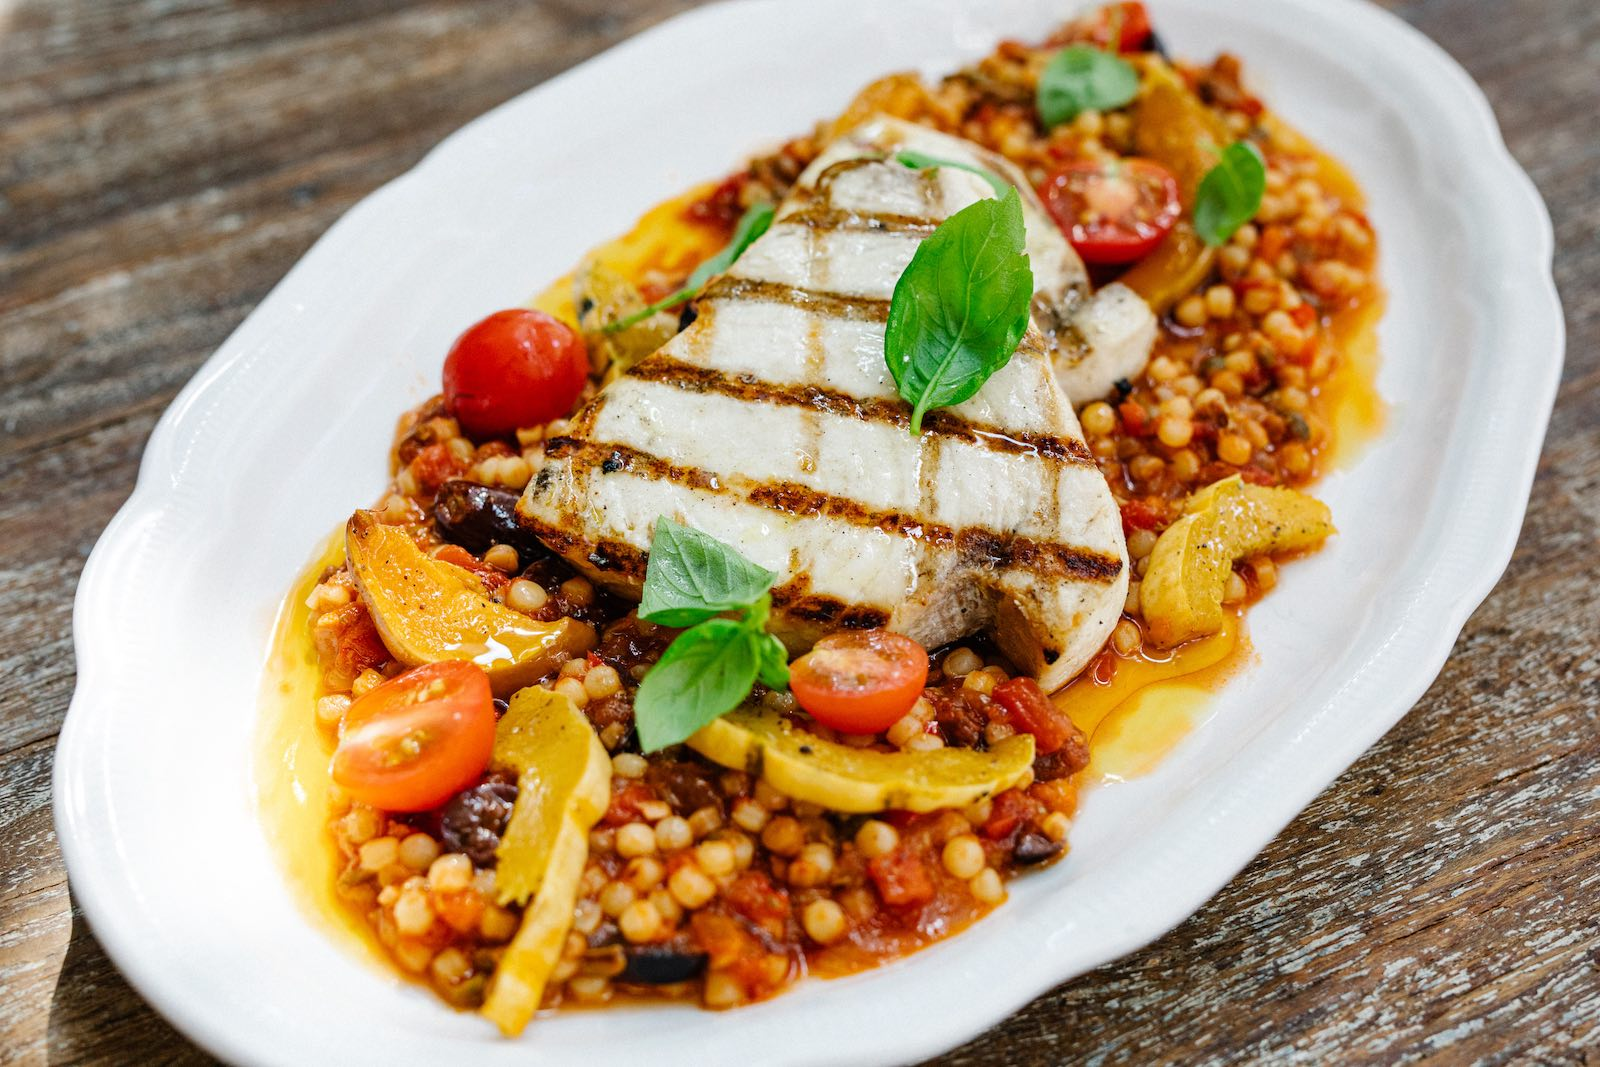 The pesce alla puttanesca at Osteria Georgi pairs Sardinian couscous with the fish of the day